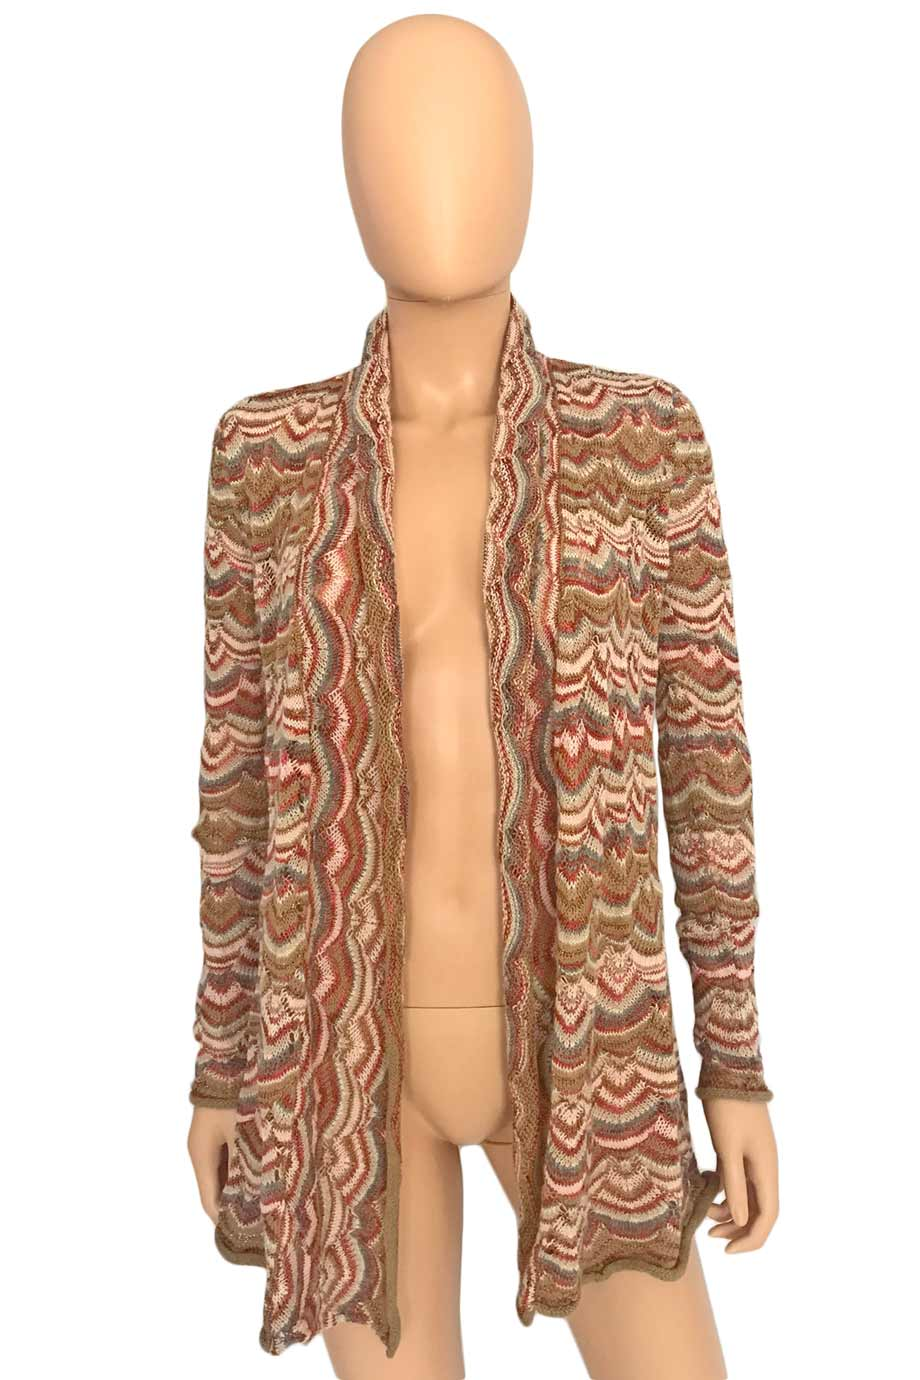 Calypso St Barth Pink + Beige Multi Stripe Cardigan Sweater / Sz XS-Style Therapy